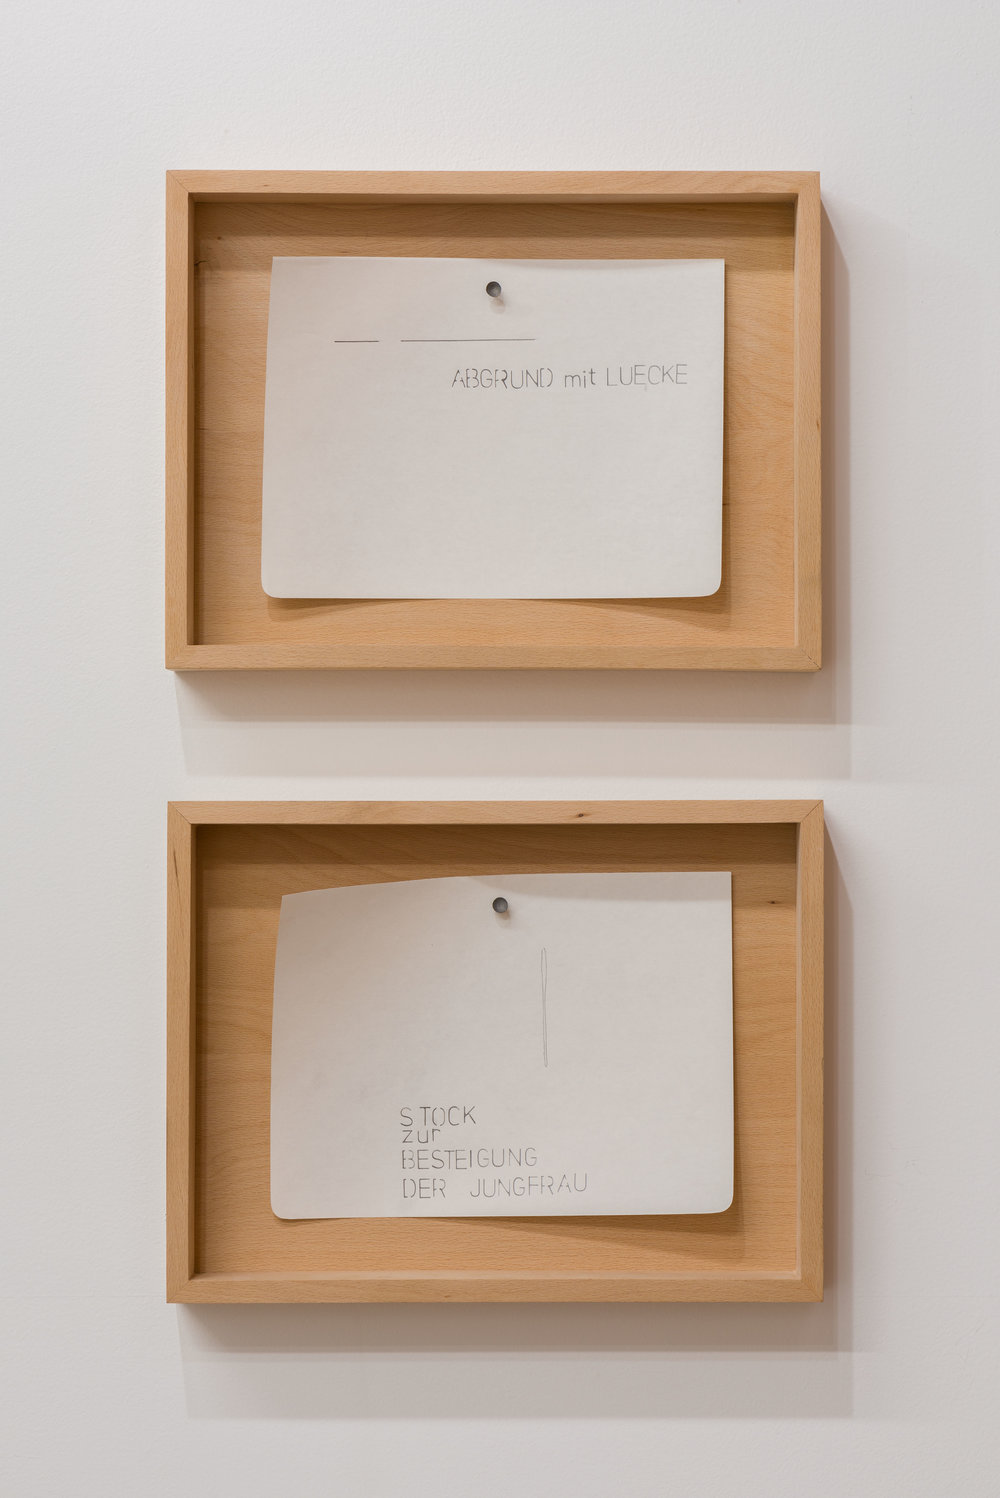 Margarethe Drexel, 'ABGRUND mit LUECKE (ABYSS with GAP)' and 'STOCK zur BESTEIGUNG DER JUNGFRAU (STICK for MOUNTING THE VIRGIN)' 2015, pencil on paper, nail. Each: 9.75 x 7 inches, framed with beech untreated, 17.75 x 10.5 x 2 inches. Photo: Ruben Diaz.